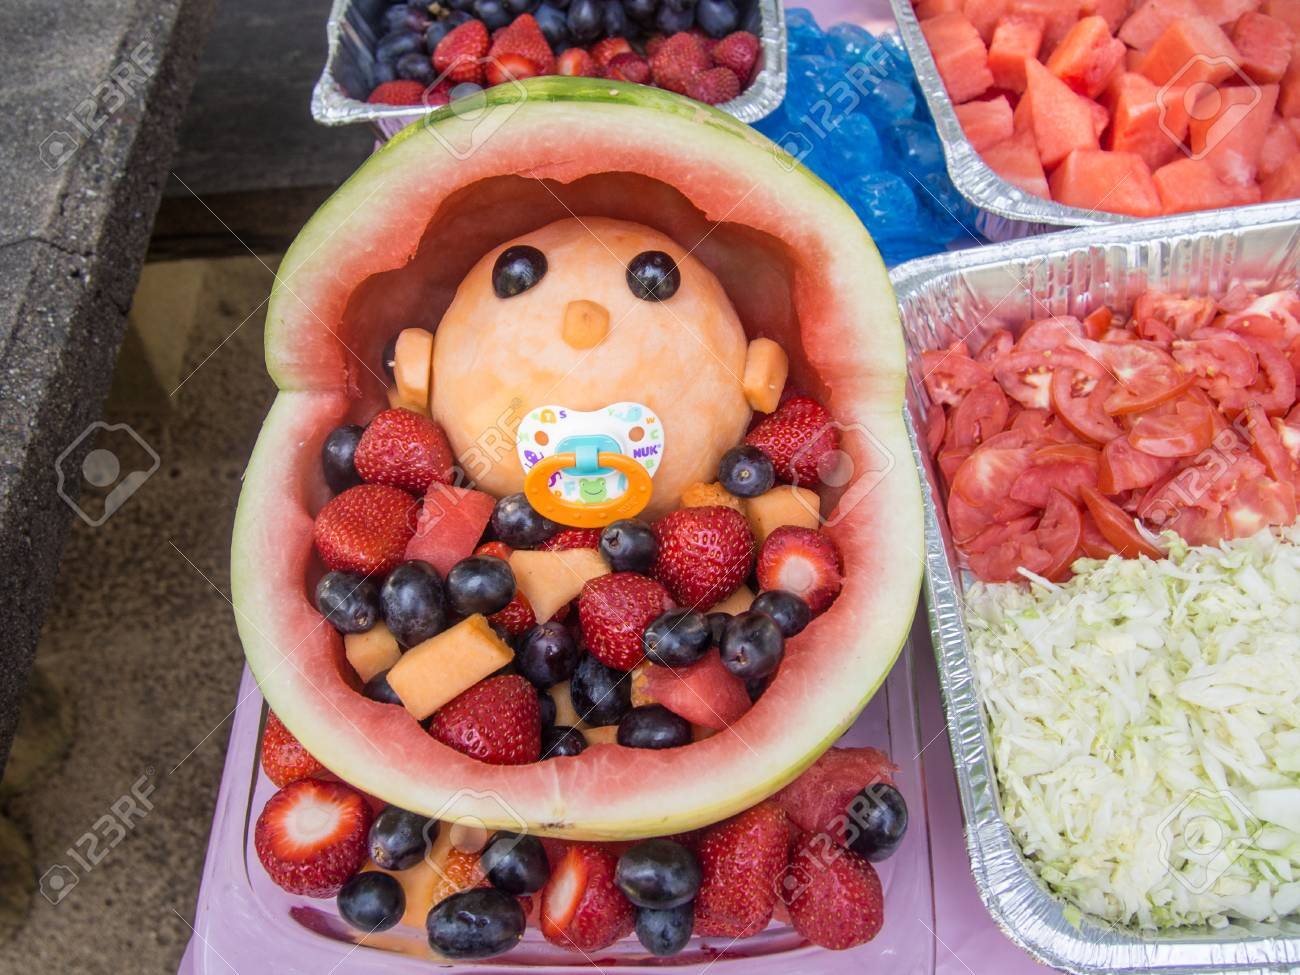 Watermelon Baby Carriage Is Just Waiting To Get Rolled Into A ...